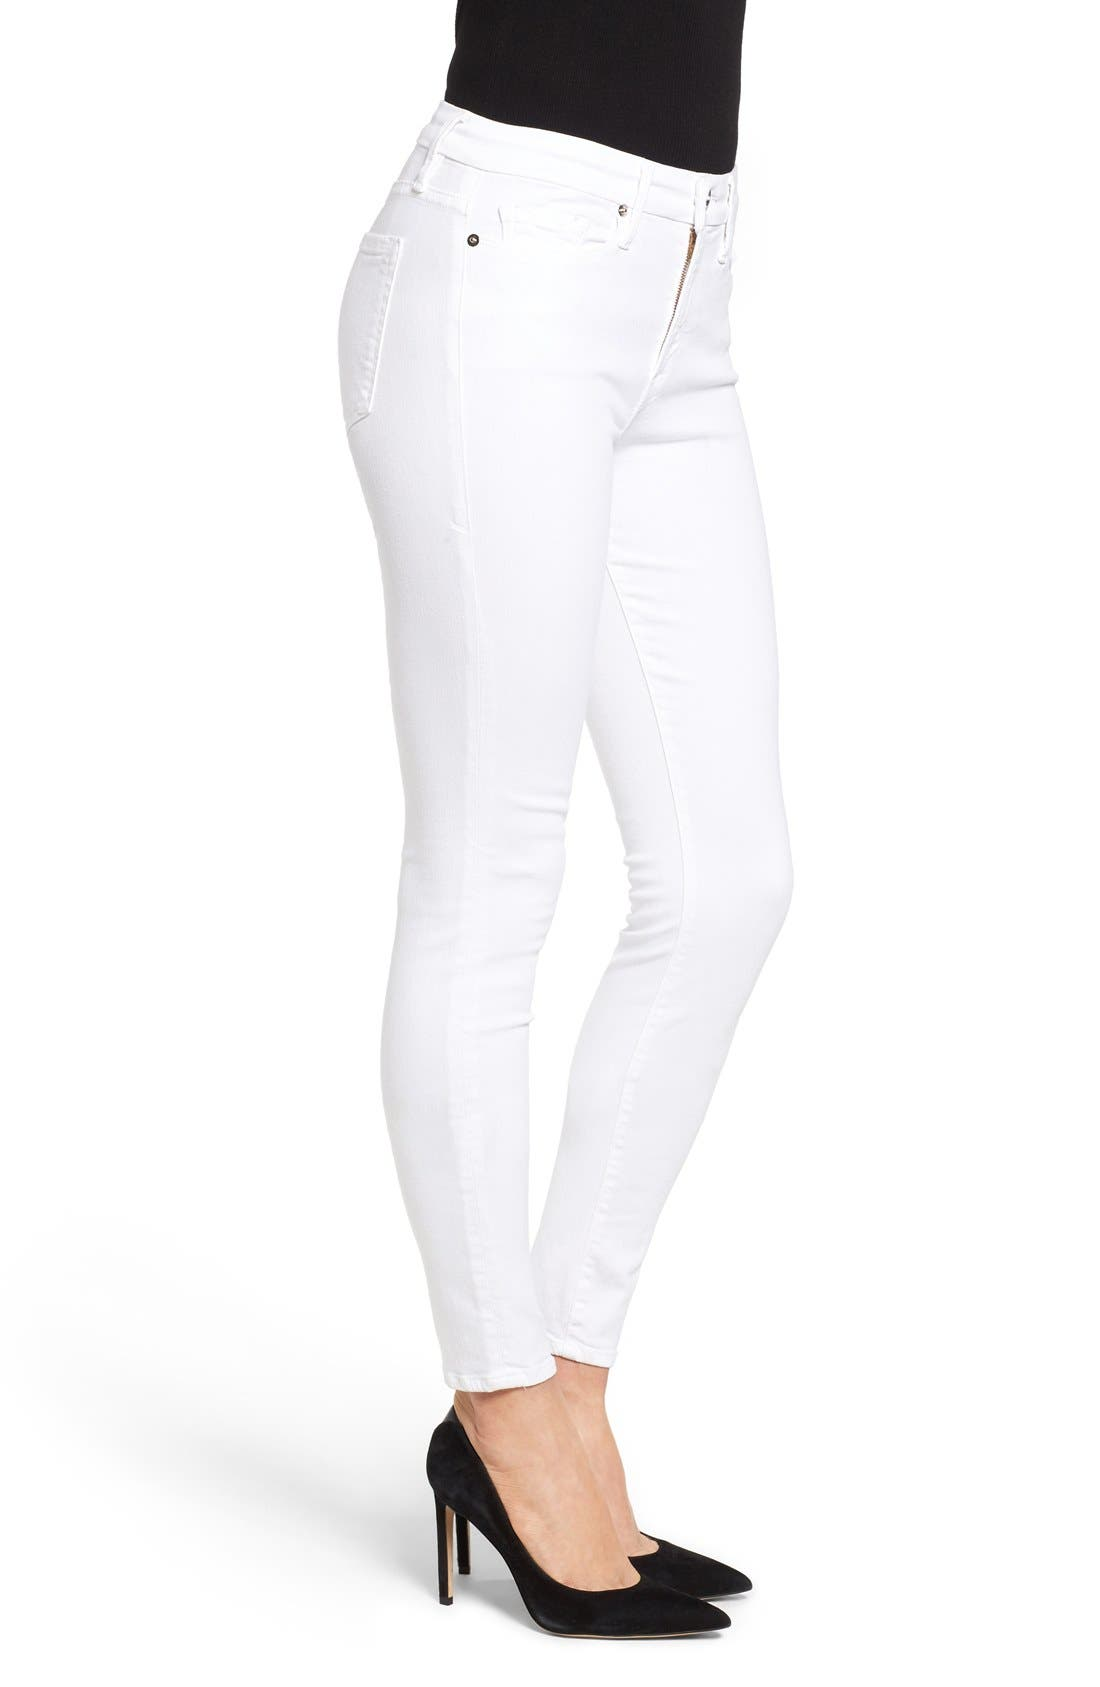 Alternate Image 3  - Good American Good Legs High Rise Skinny Jeans (White 001) (Extended Sizes)